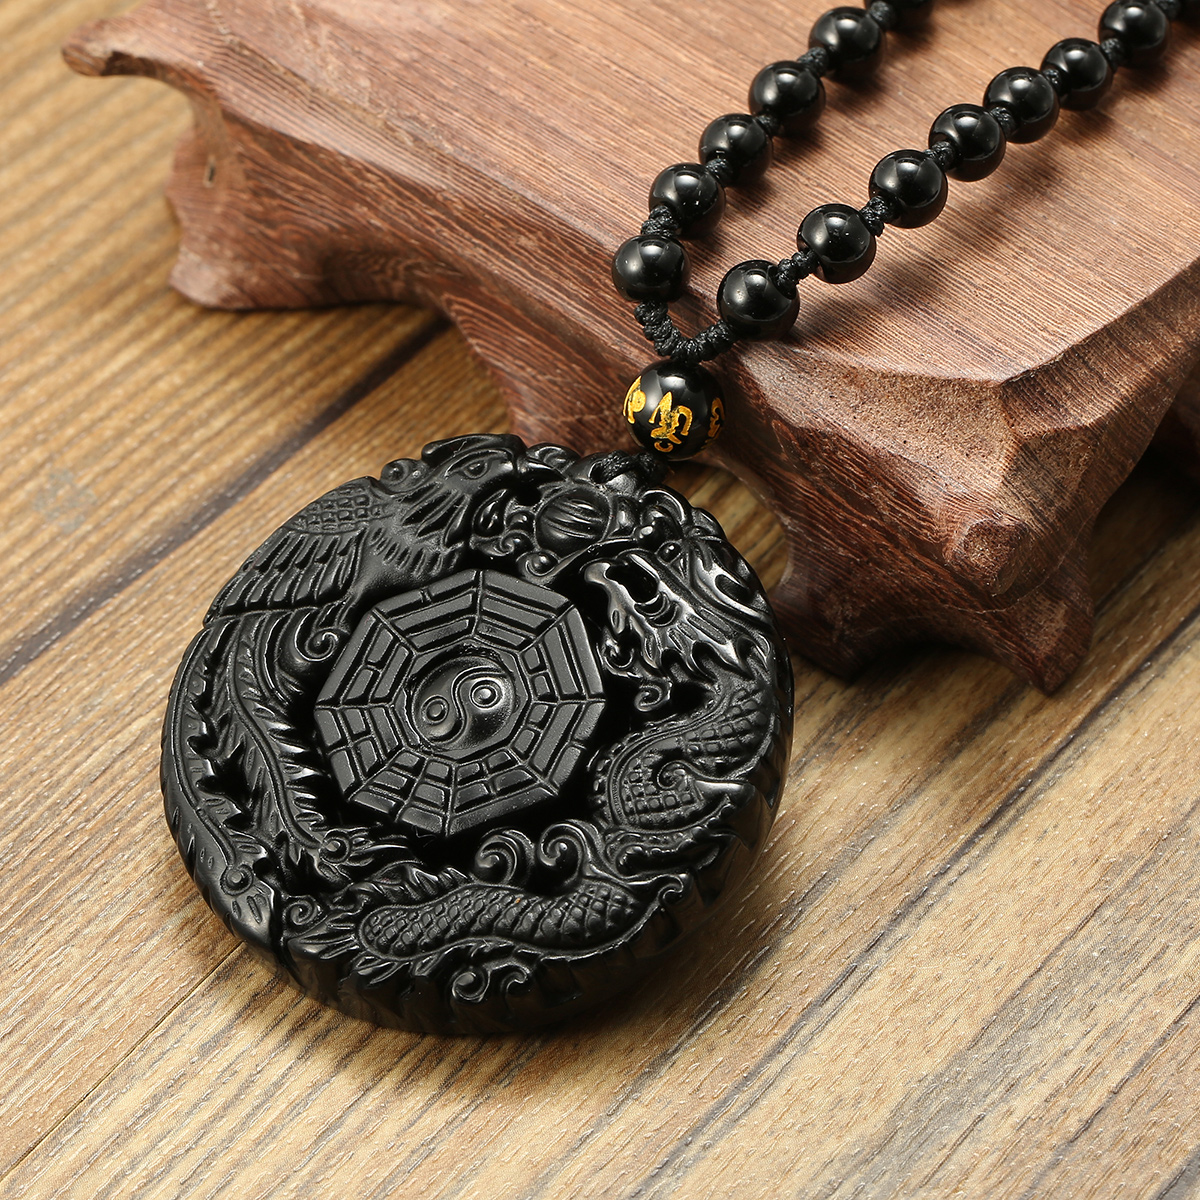 Black Obsidian Lucky Pendant Tai Chi Necklace Chain For Men Women Gift